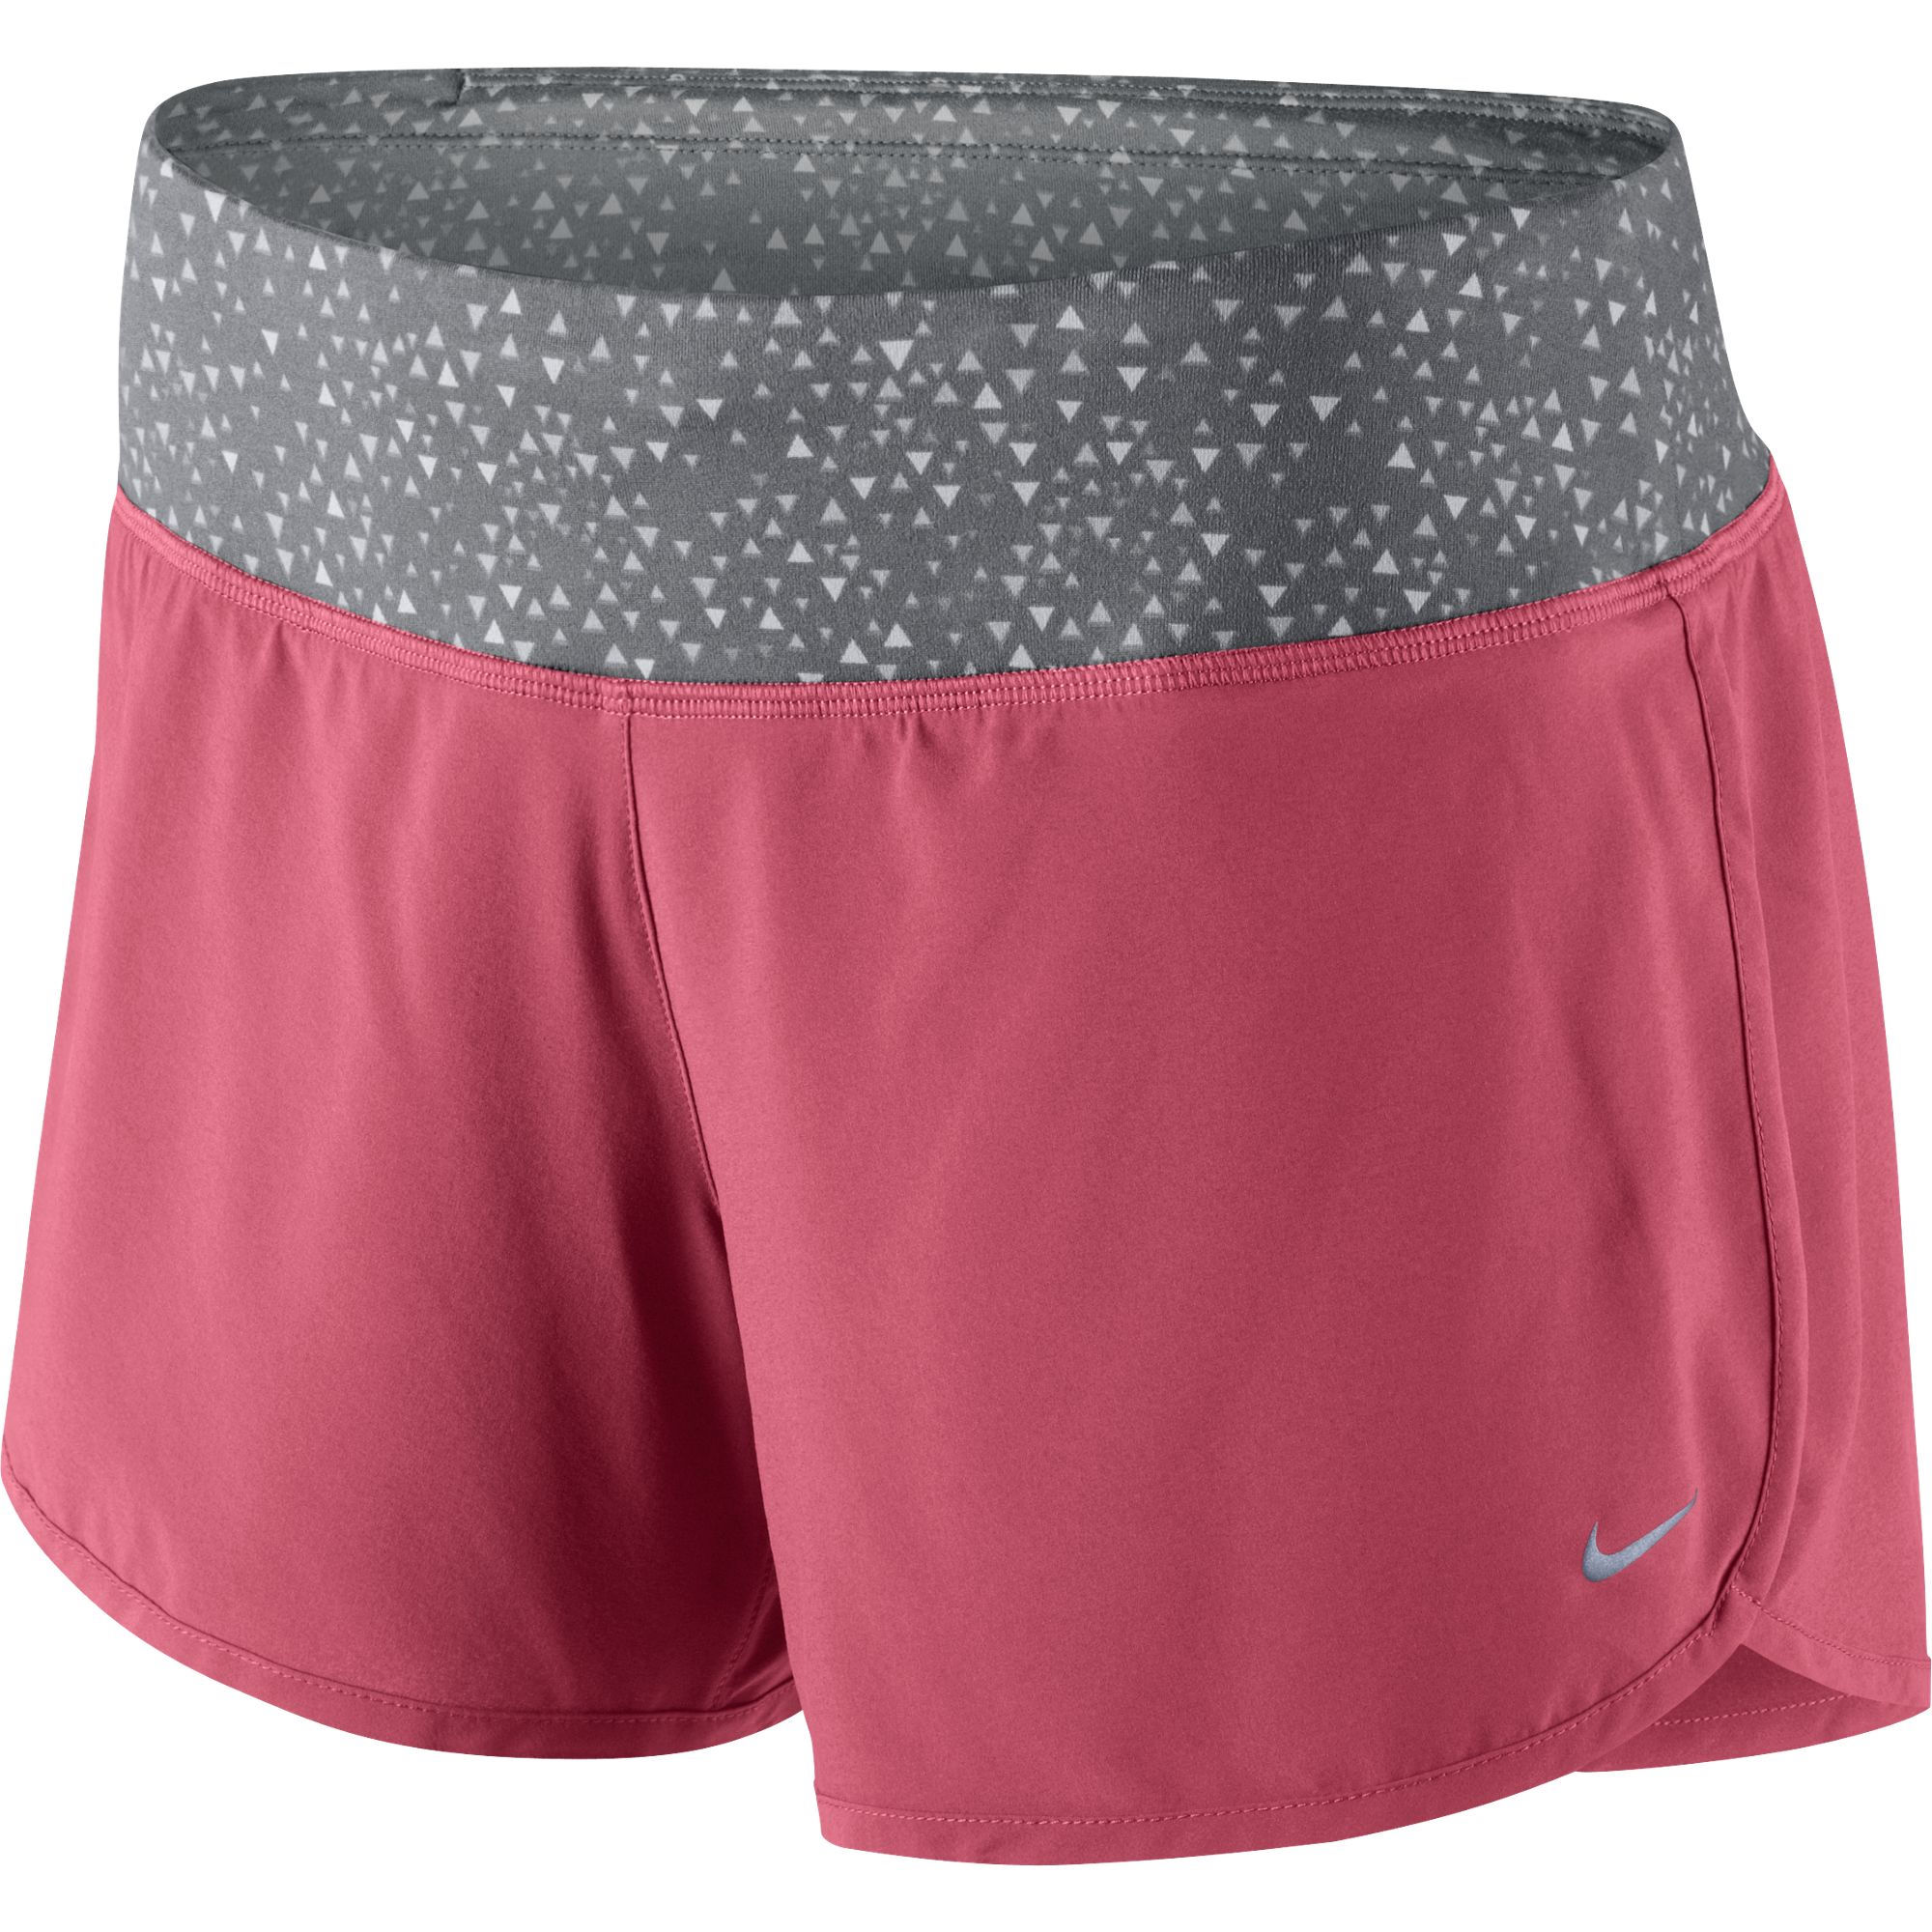 wiggle nike women 39 s 4 nike rival short su14 running shorts. Black Bedroom Furniture Sets. Home Design Ideas